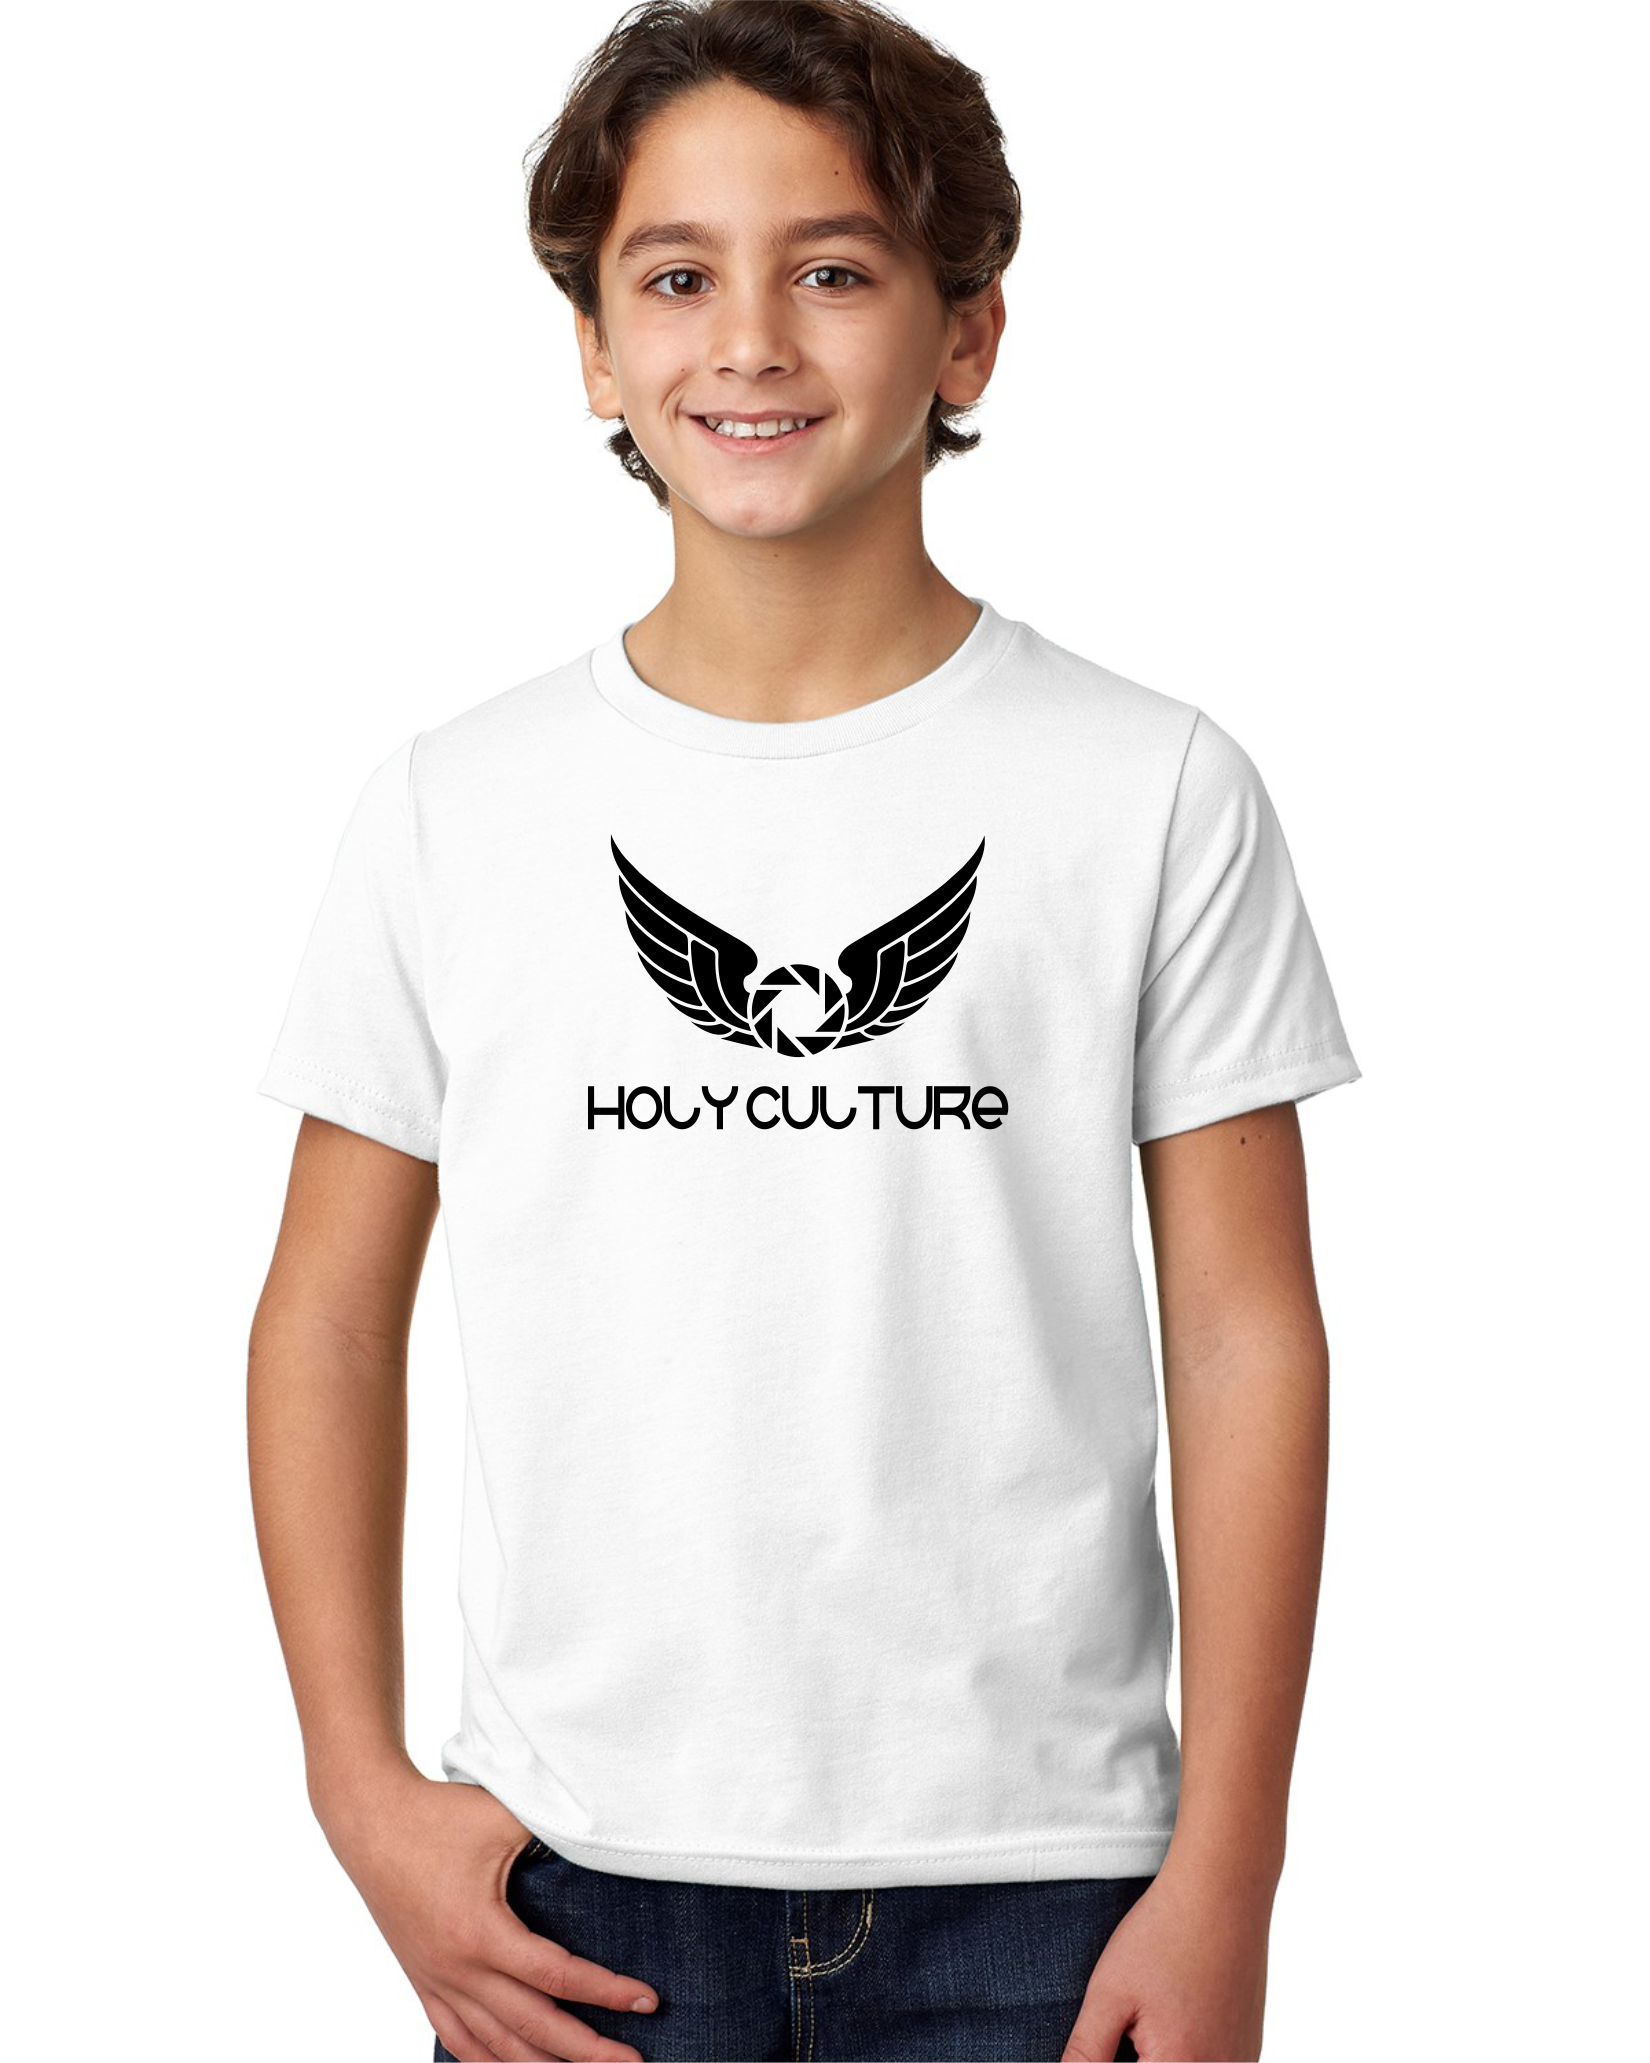 Holy Culture Kids T-Shirt White